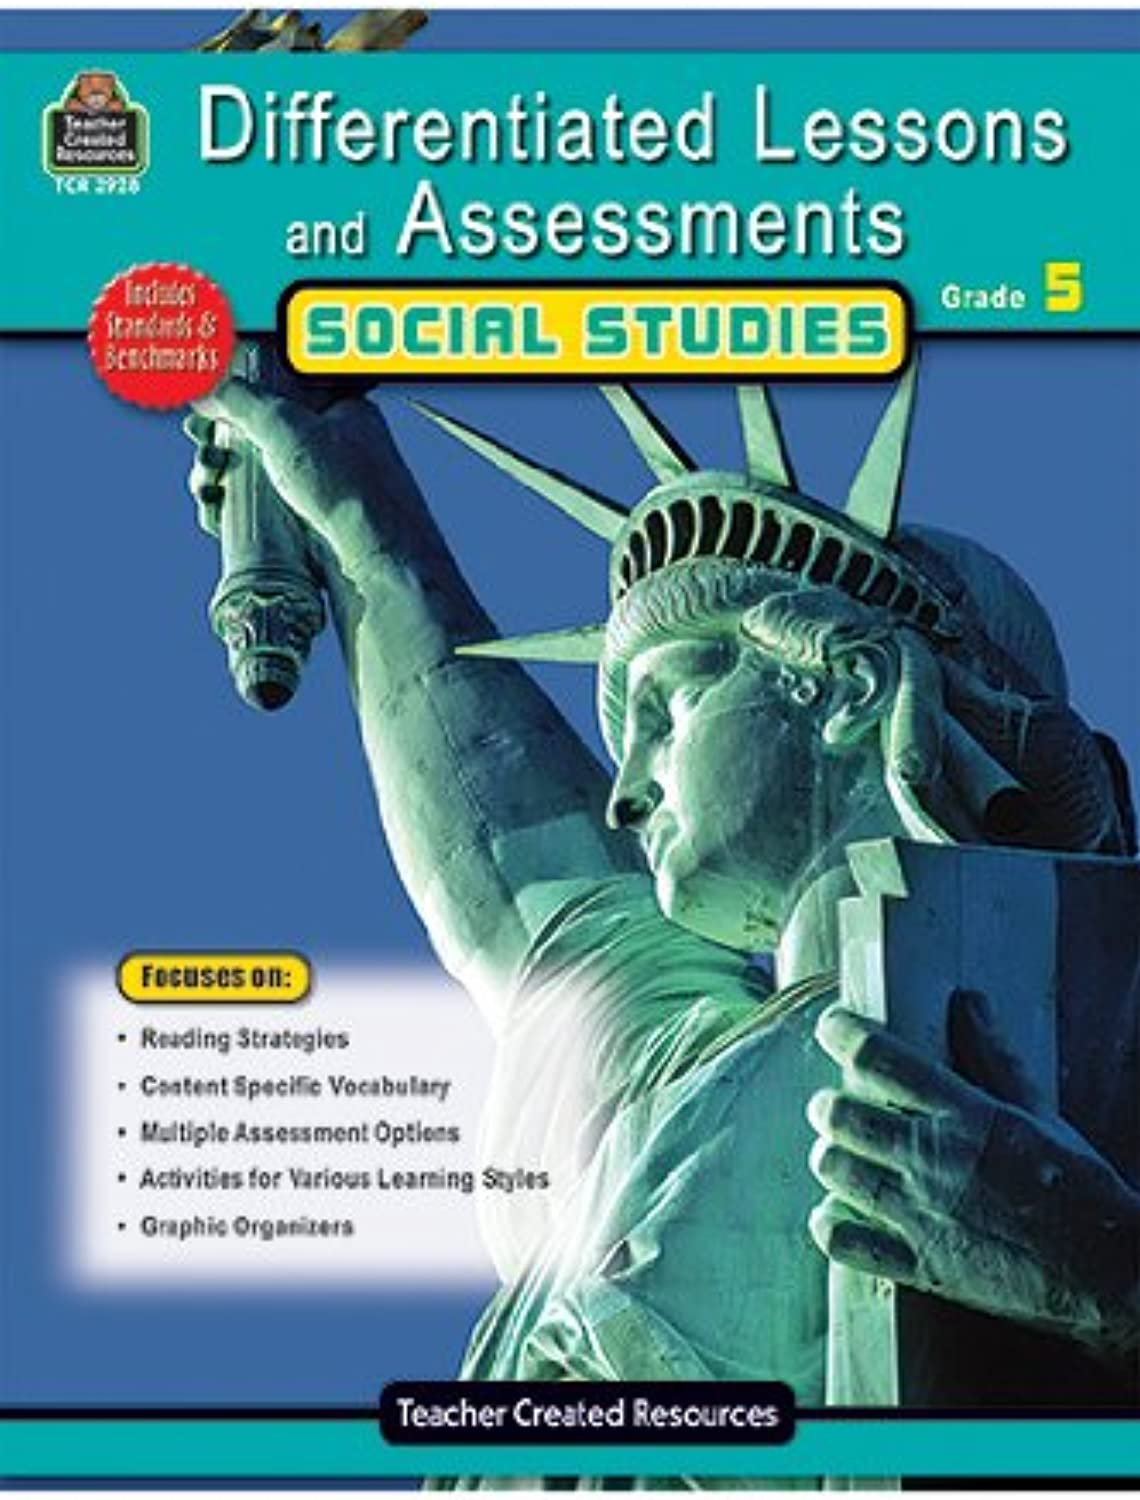 Teacher Created Resources 2928 Differentiated Lessons & Assessments Social Studies Grade 5